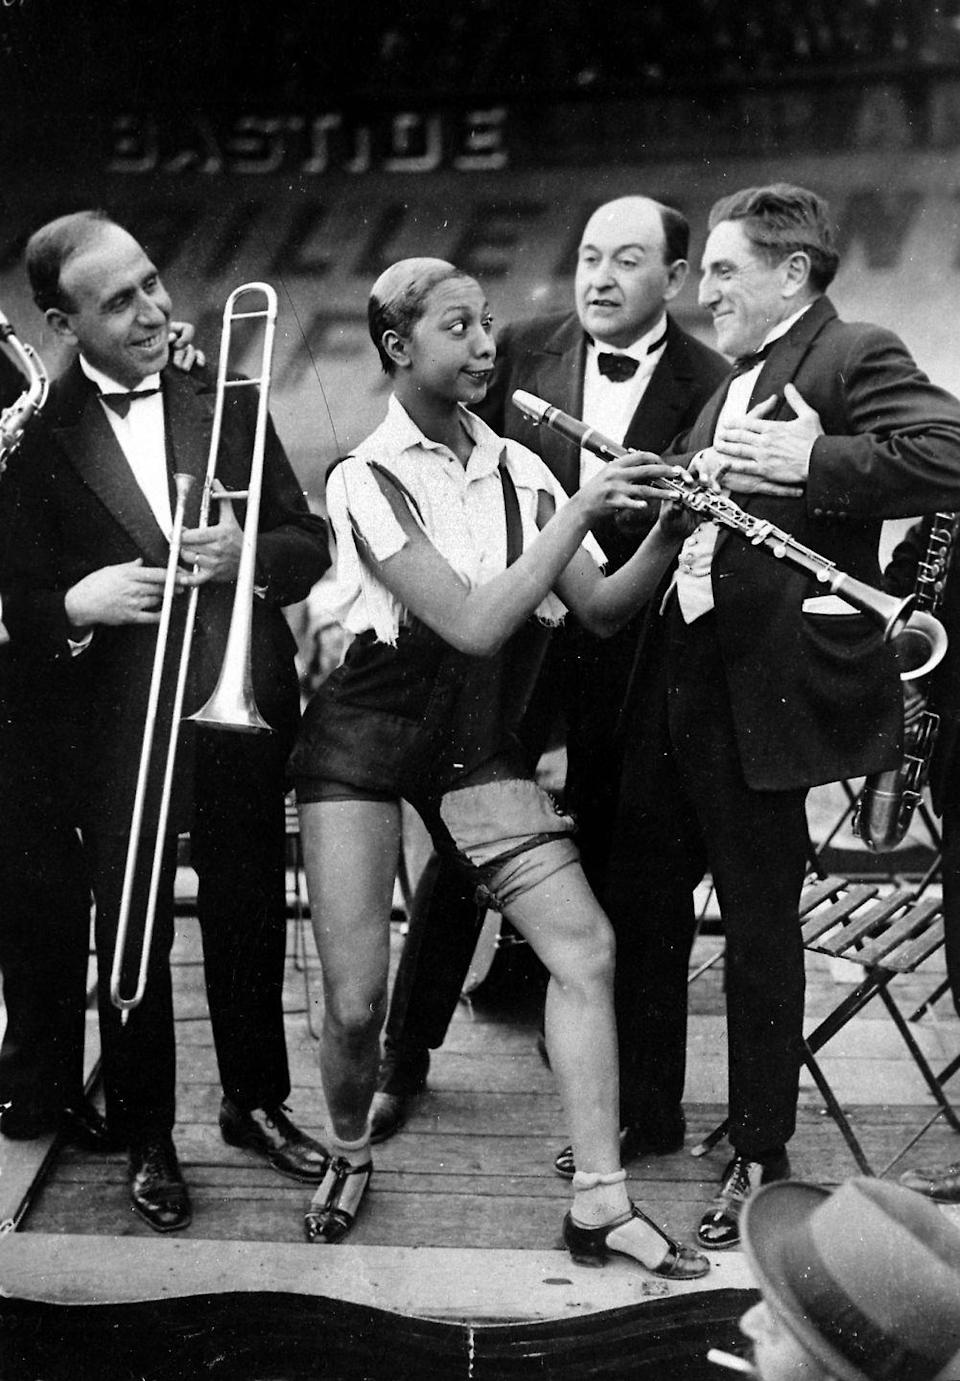 """<p>At the age of 13, Baker ran away in hopes of becoming a dancer. She found work <a href=""""https://www.stltoday.com/entertainment/books-and-literature/josephine-baker-a-diva-who-embraced-the-world/article_2f021e35-4c81-5388-a537-b4dcee3f3503.html"""" rel=""""nofollow noopener"""" target=""""_blank"""" data-ylk=""""slk:waitressing at the Old Chauffeur's Club"""" class=""""link rapid-noclick-resp"""">waitressing at the Old Chauffeur's Club</a> and dancing on the street for money. In 1919, she landed her big break: Touring the country as a dancer with the Jones Family Band and the Dixie Steppers.</p>"""